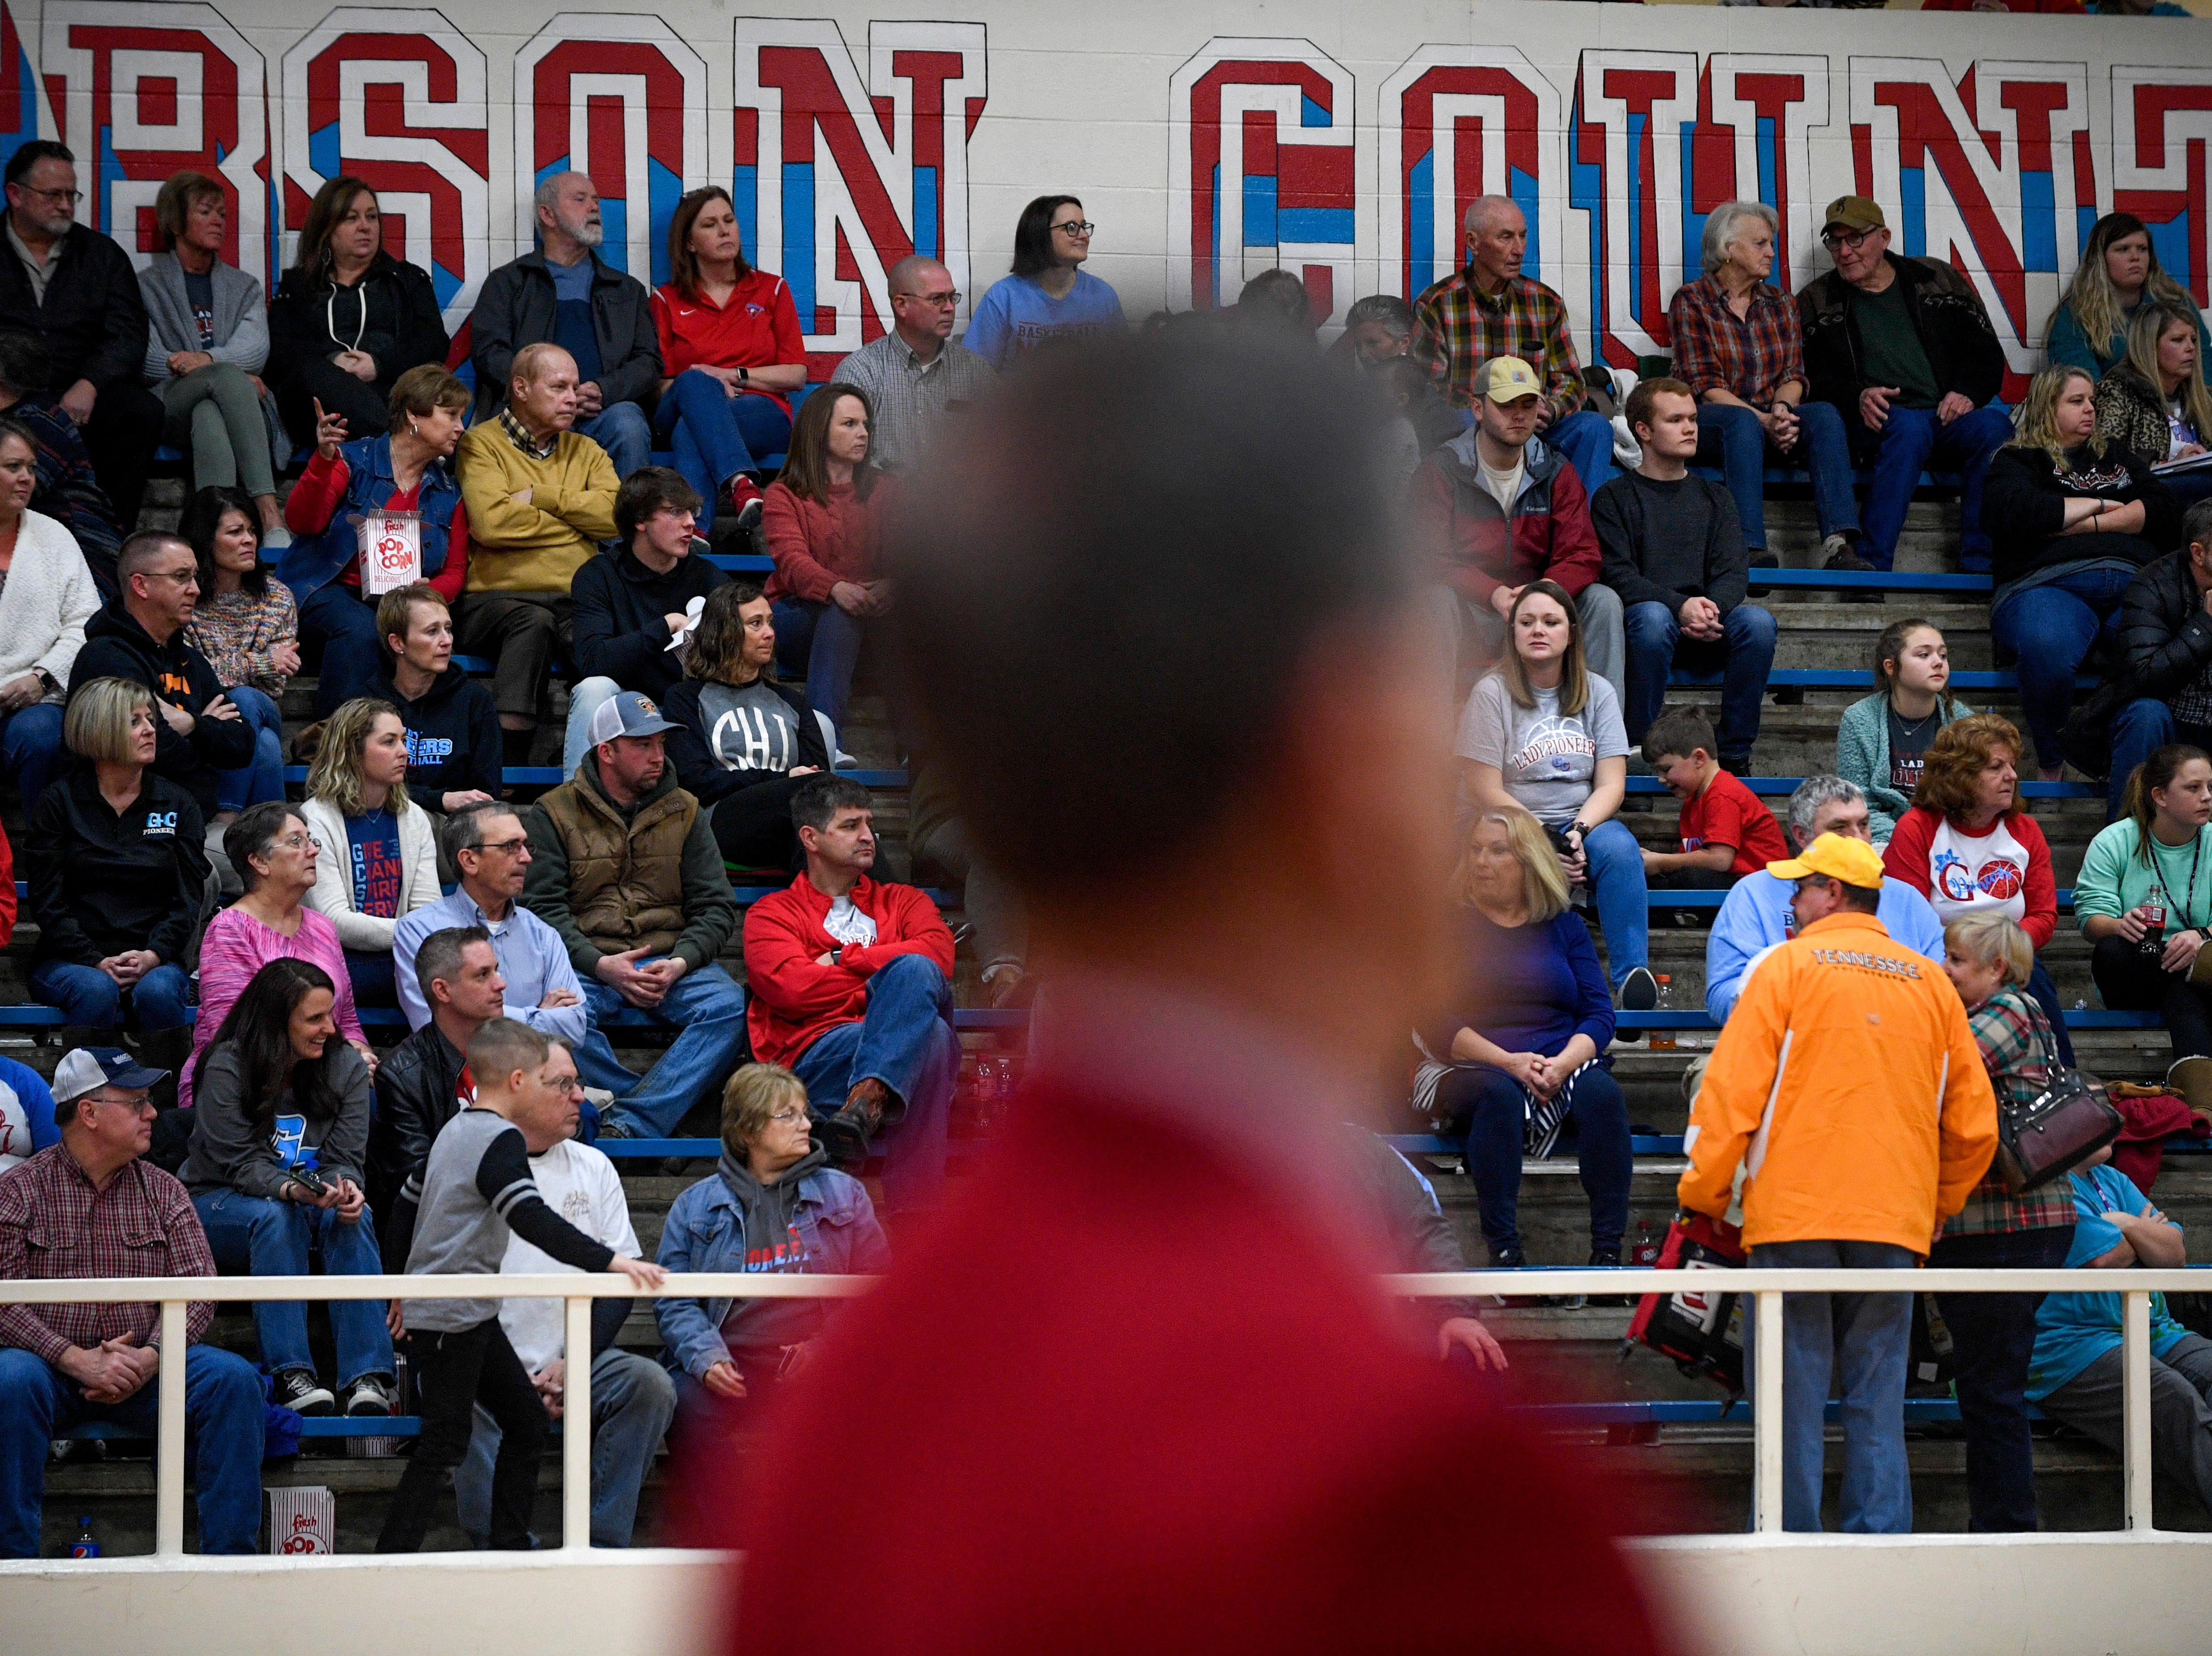 Gibson County fans sit in the stands and root on their team in a TSSAA girls basketball game between Gibson County and Trinity Christian Academy at Gibson County High School in Dyer, Tenn., on Friday, Jan. 11, 2019.